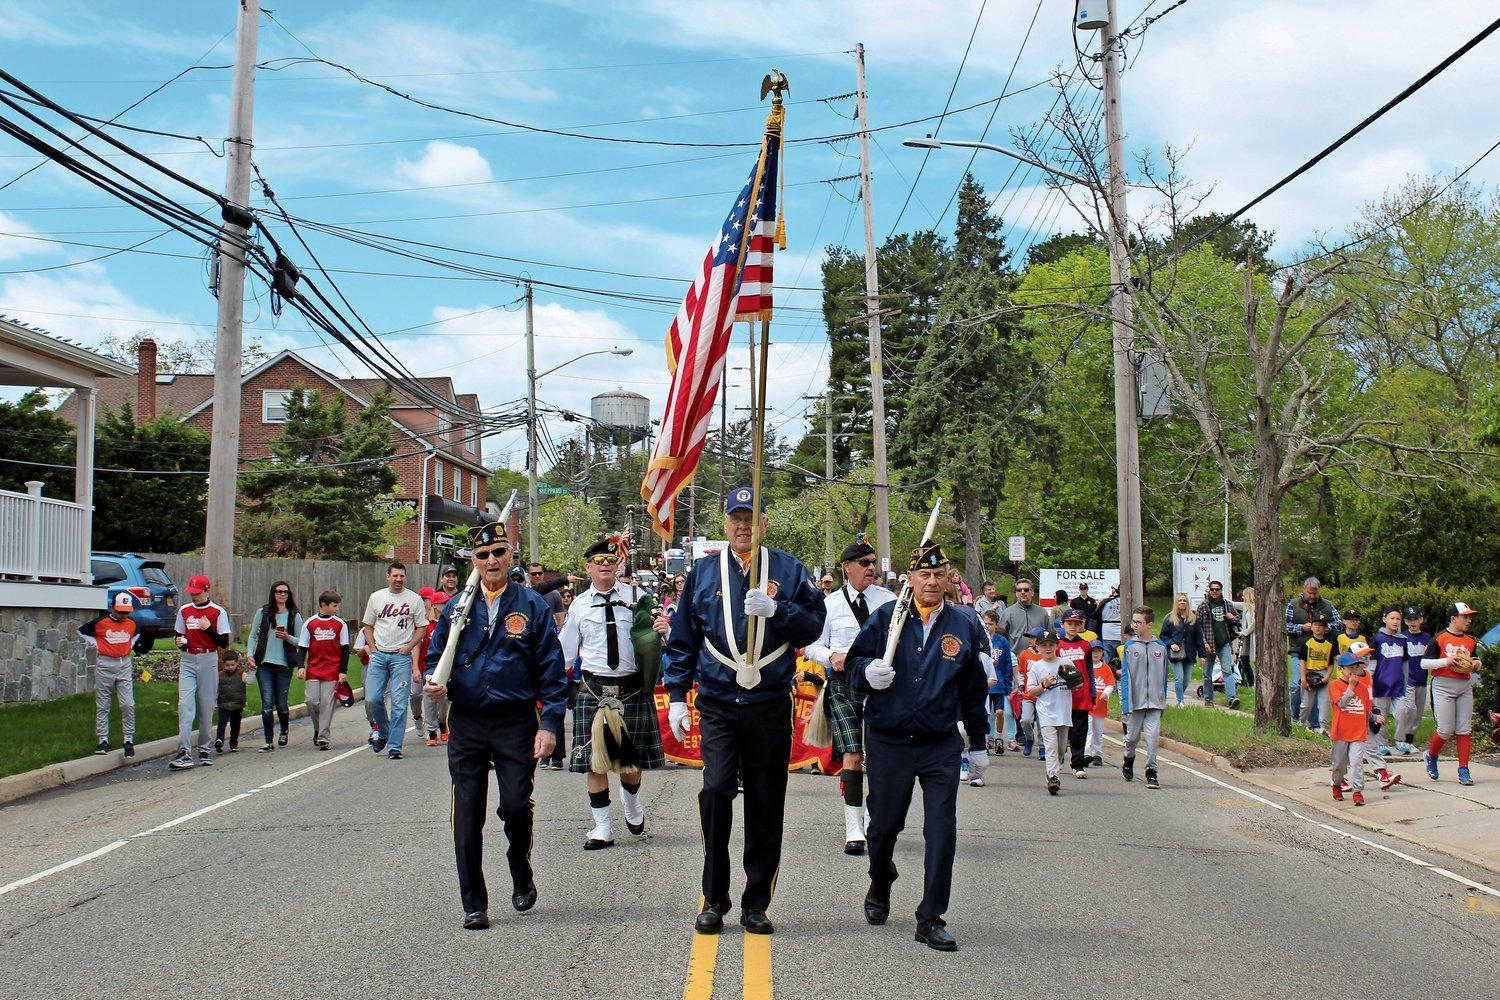 Members of the Glenwood Landing American Legion provided a color guard for the parade.